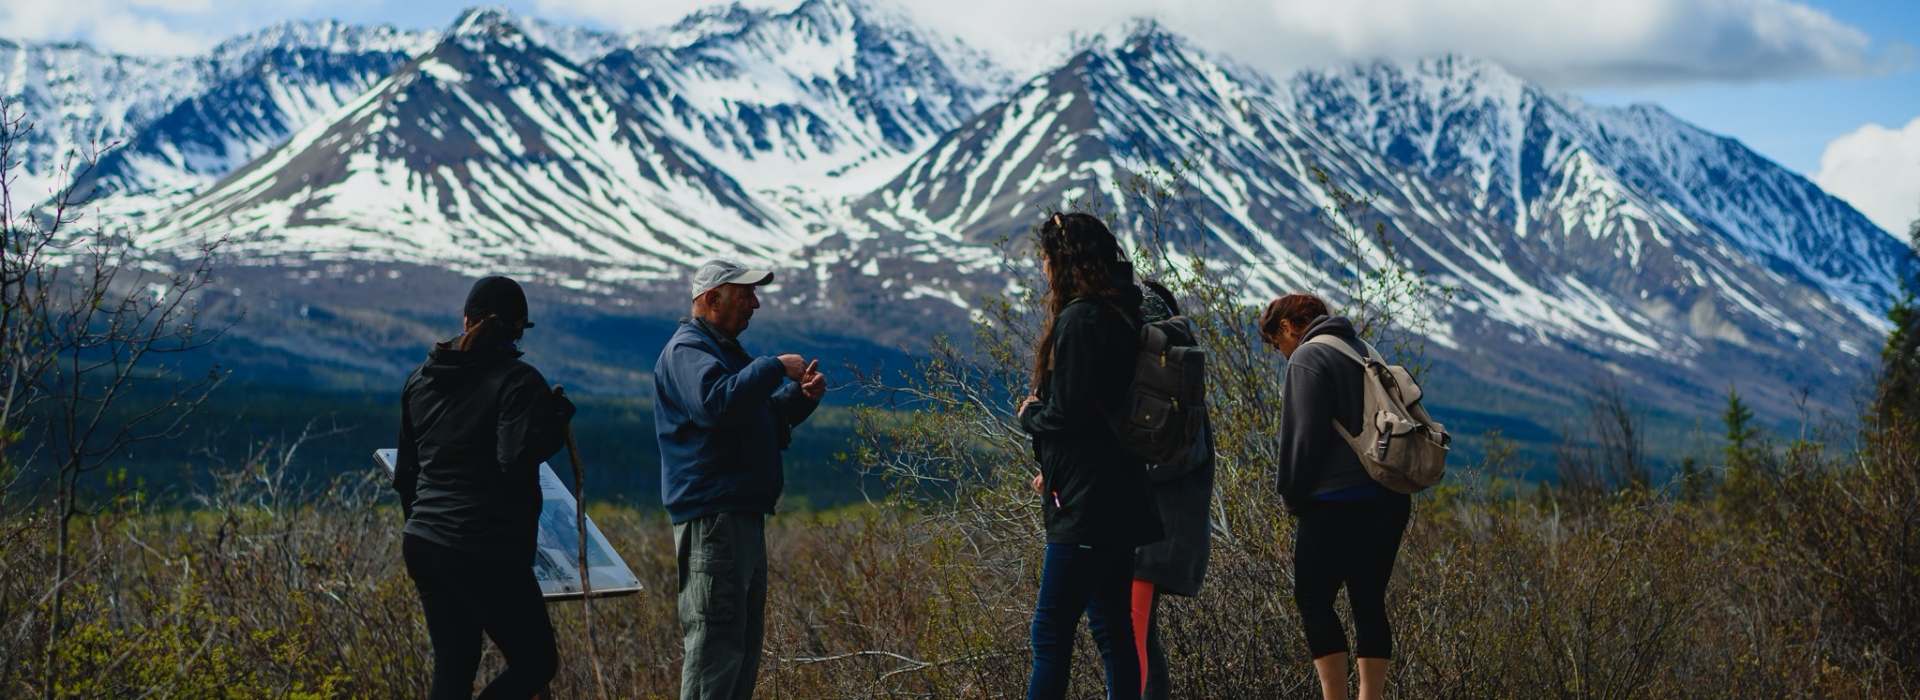 People in front of mountains